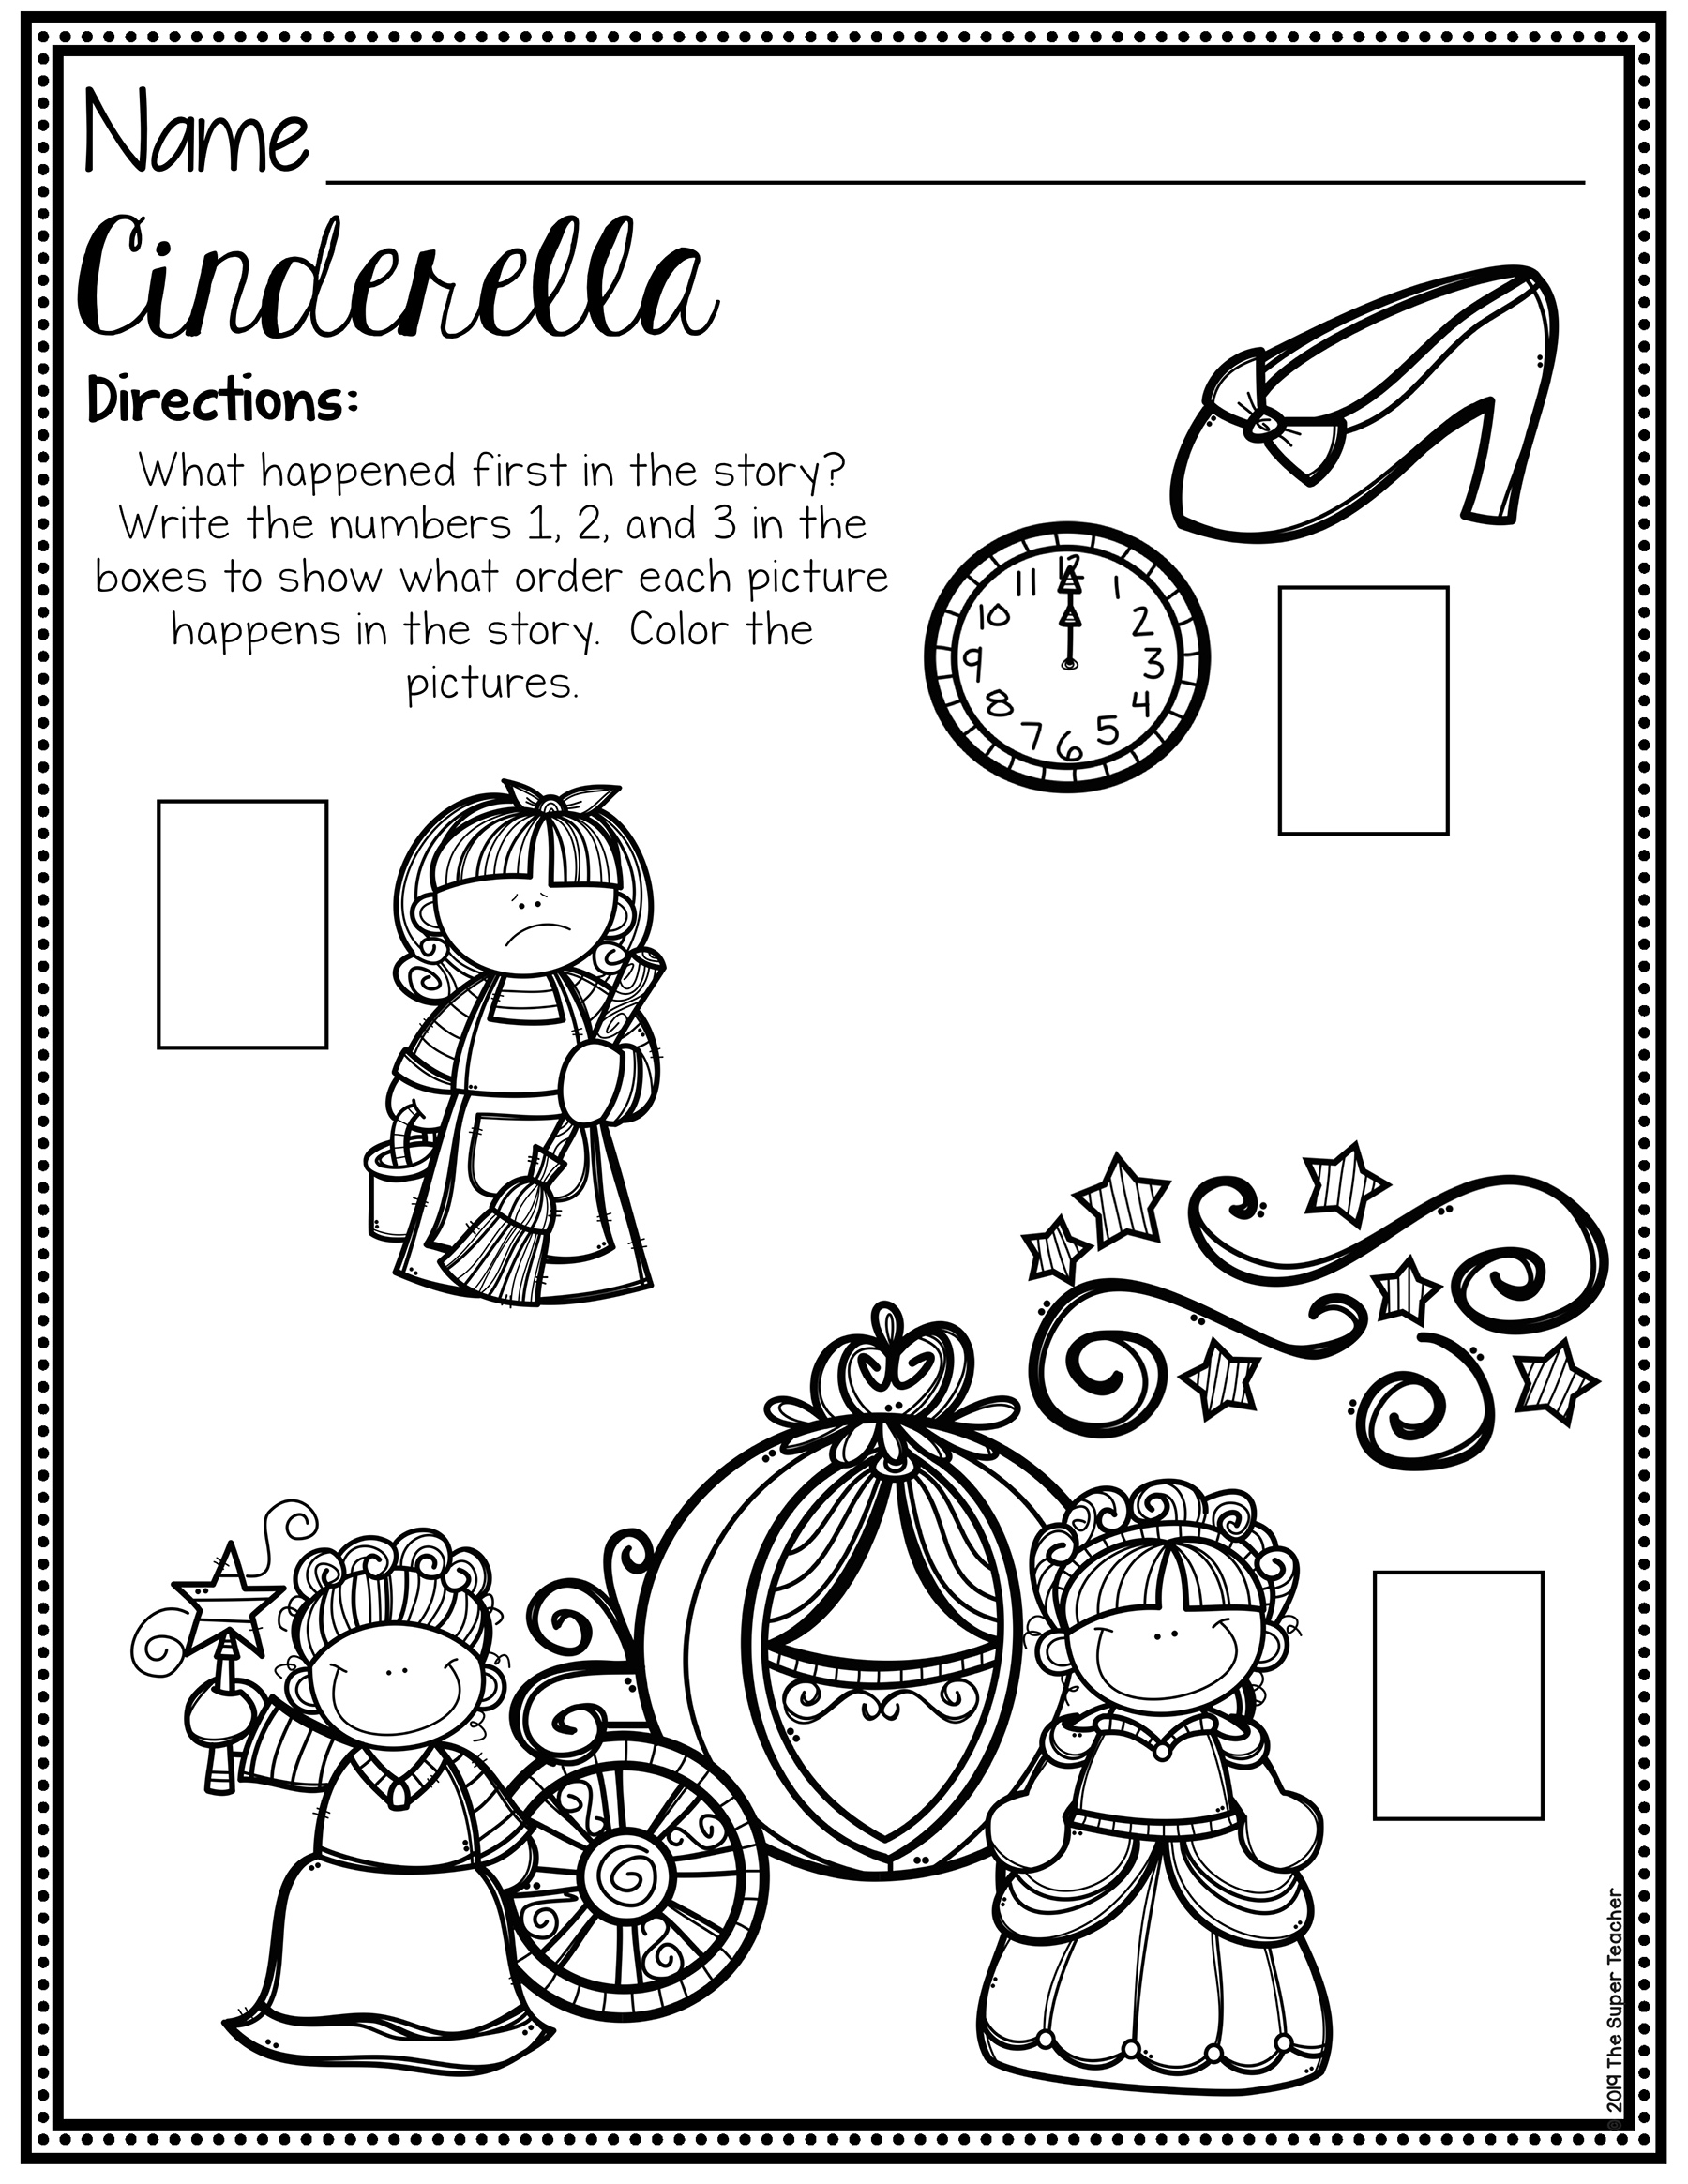 Cinderella Story Elements and Story Retelling Worksheets